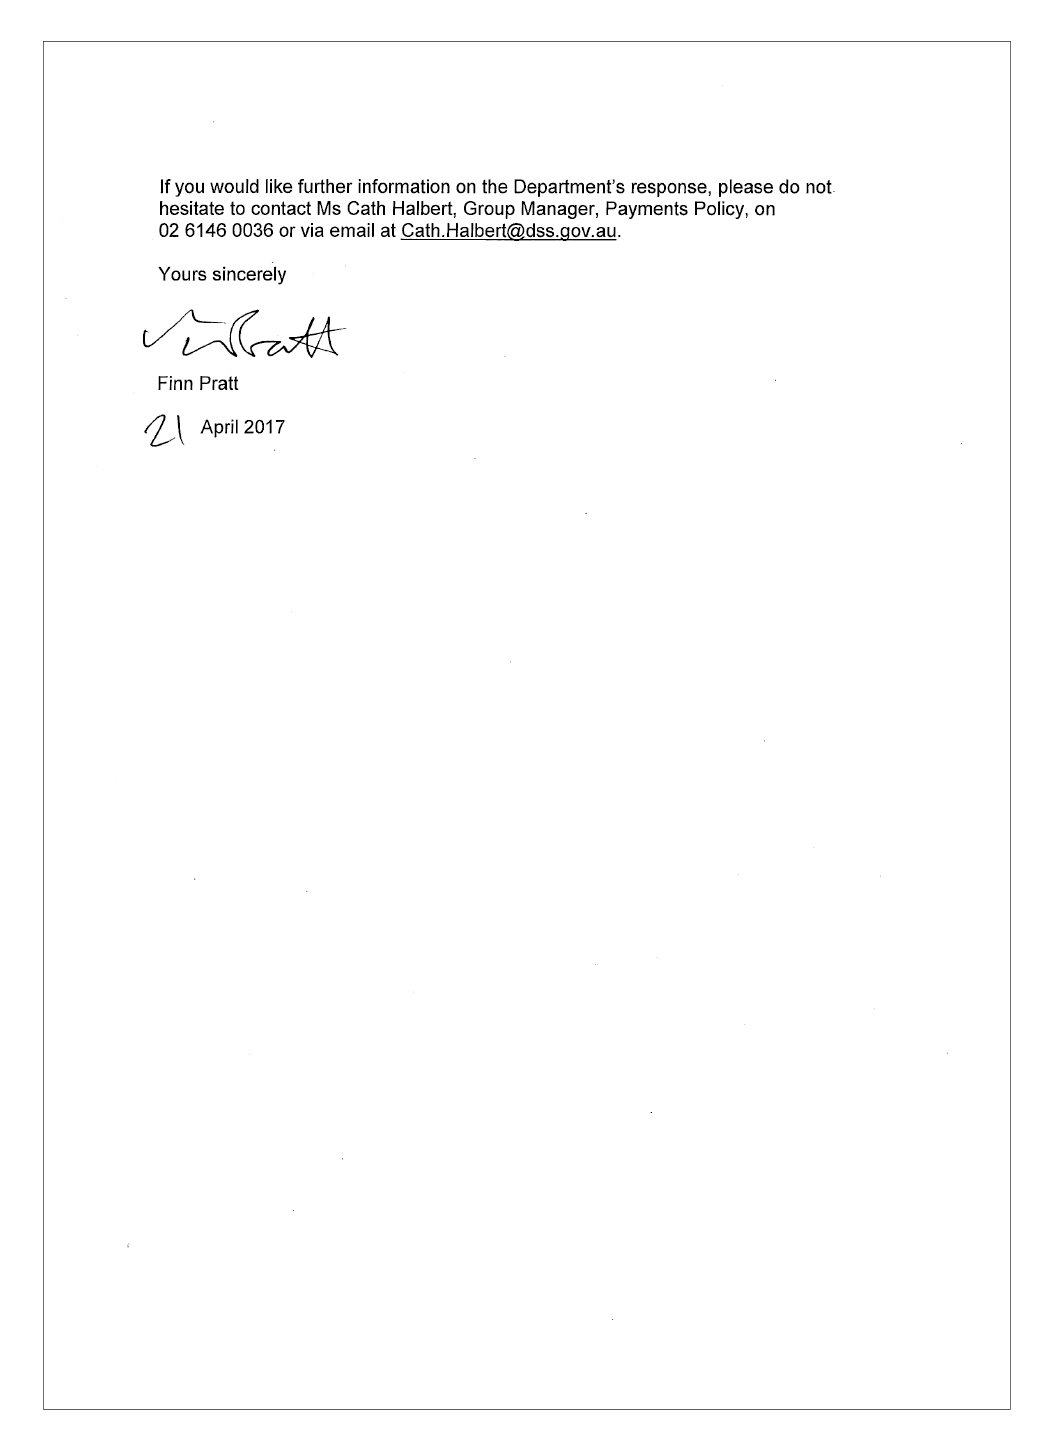 DSS response letter page 2